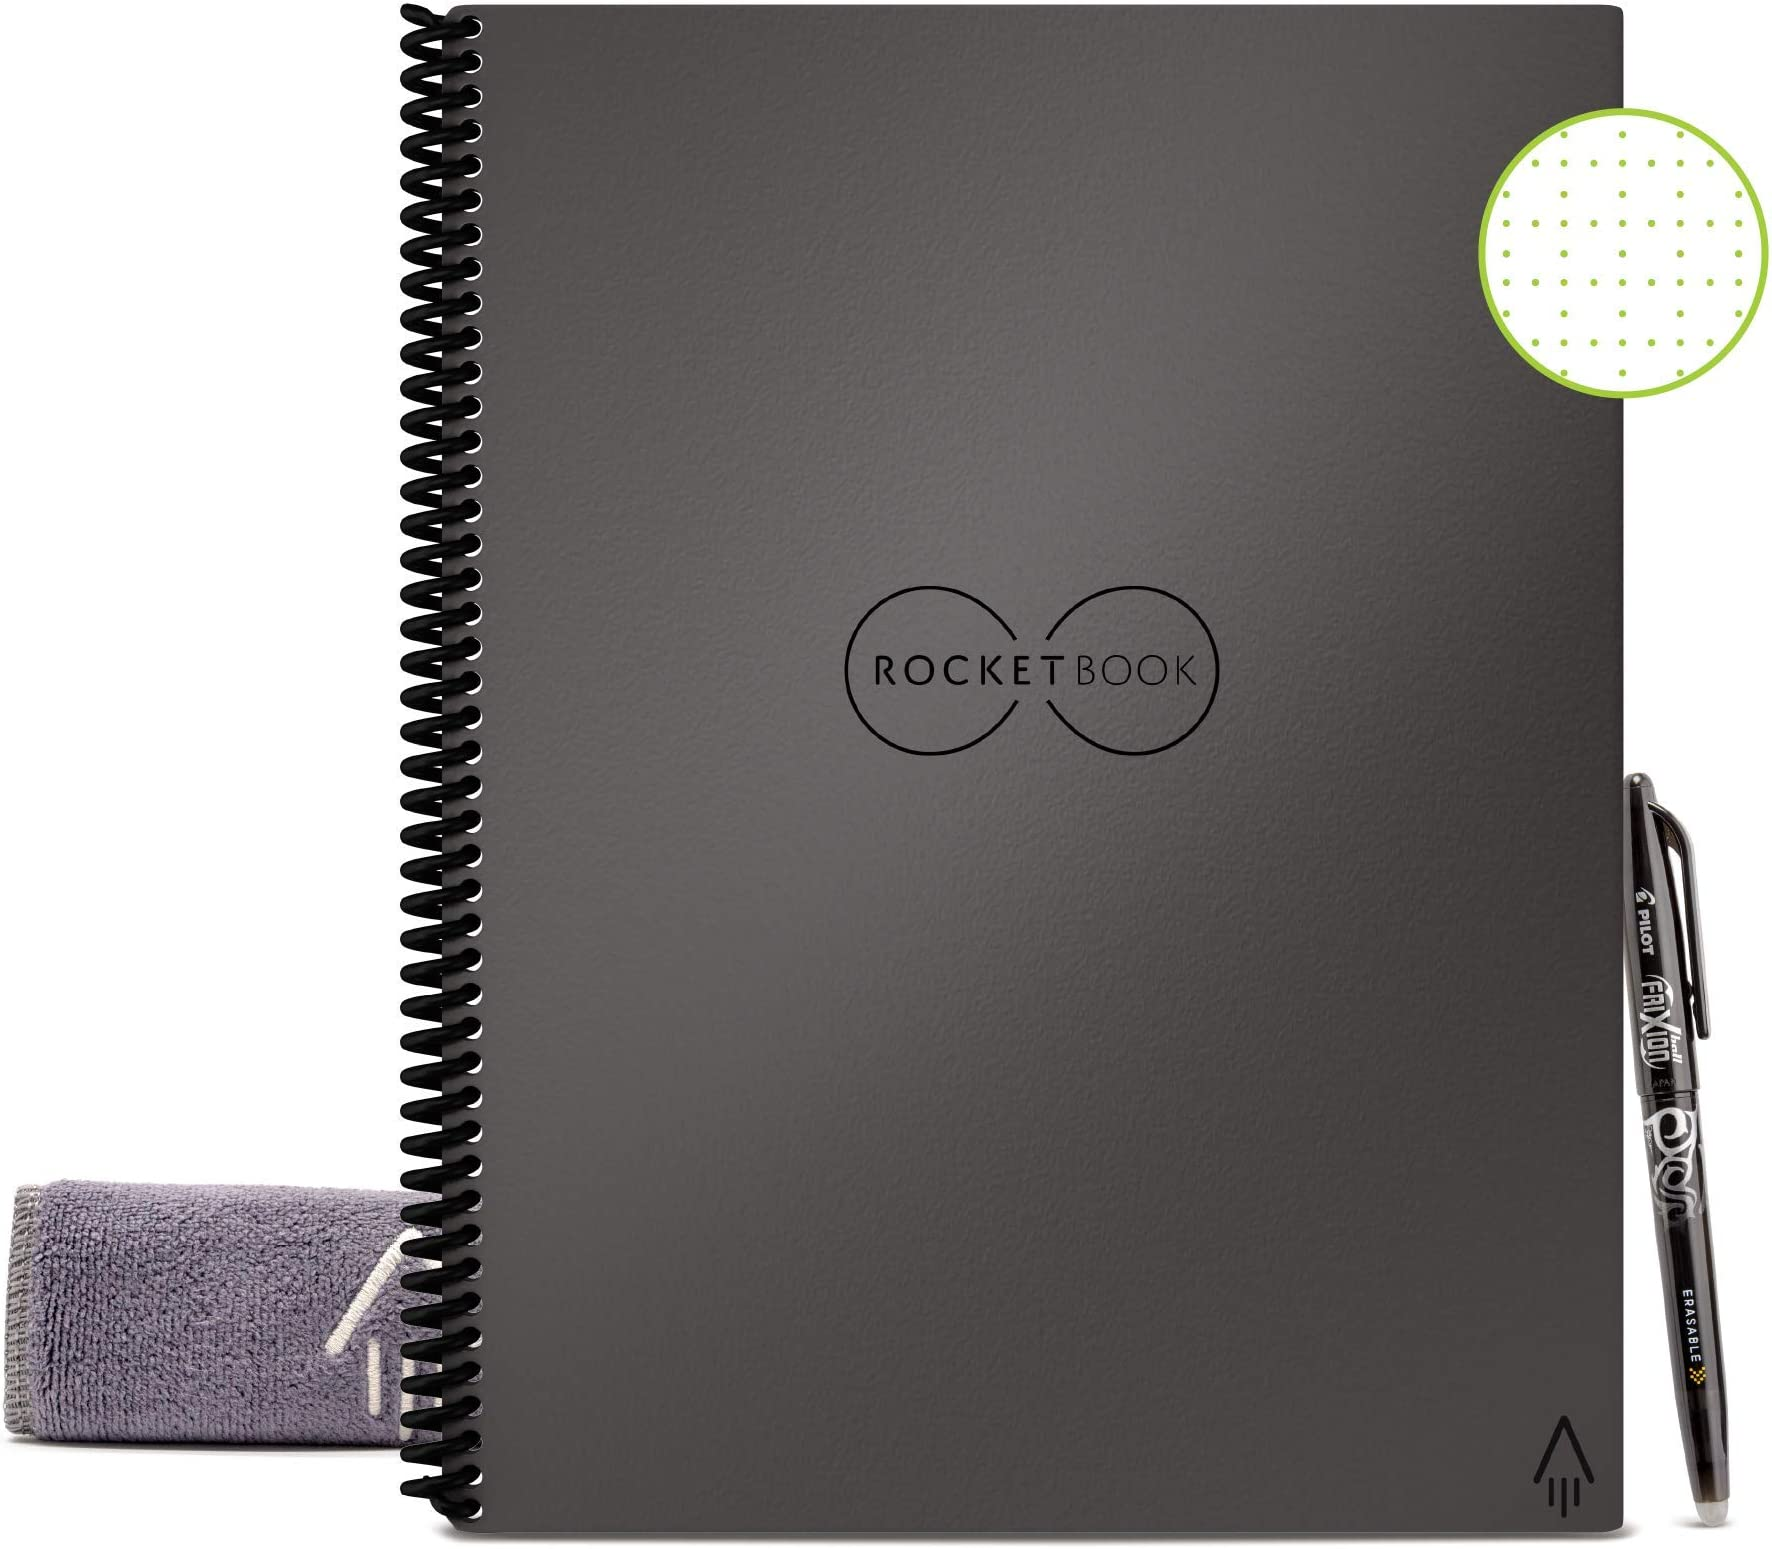 "Rocketbook Smart Reusable Notebook - Dot-Grid Eco-Friendly Notebook with 1 Pilot Frixion Pen & 1 Microfiber Cloth Included - Deep Space Gray Cover, Letter Size (8.5"" x 11"")"